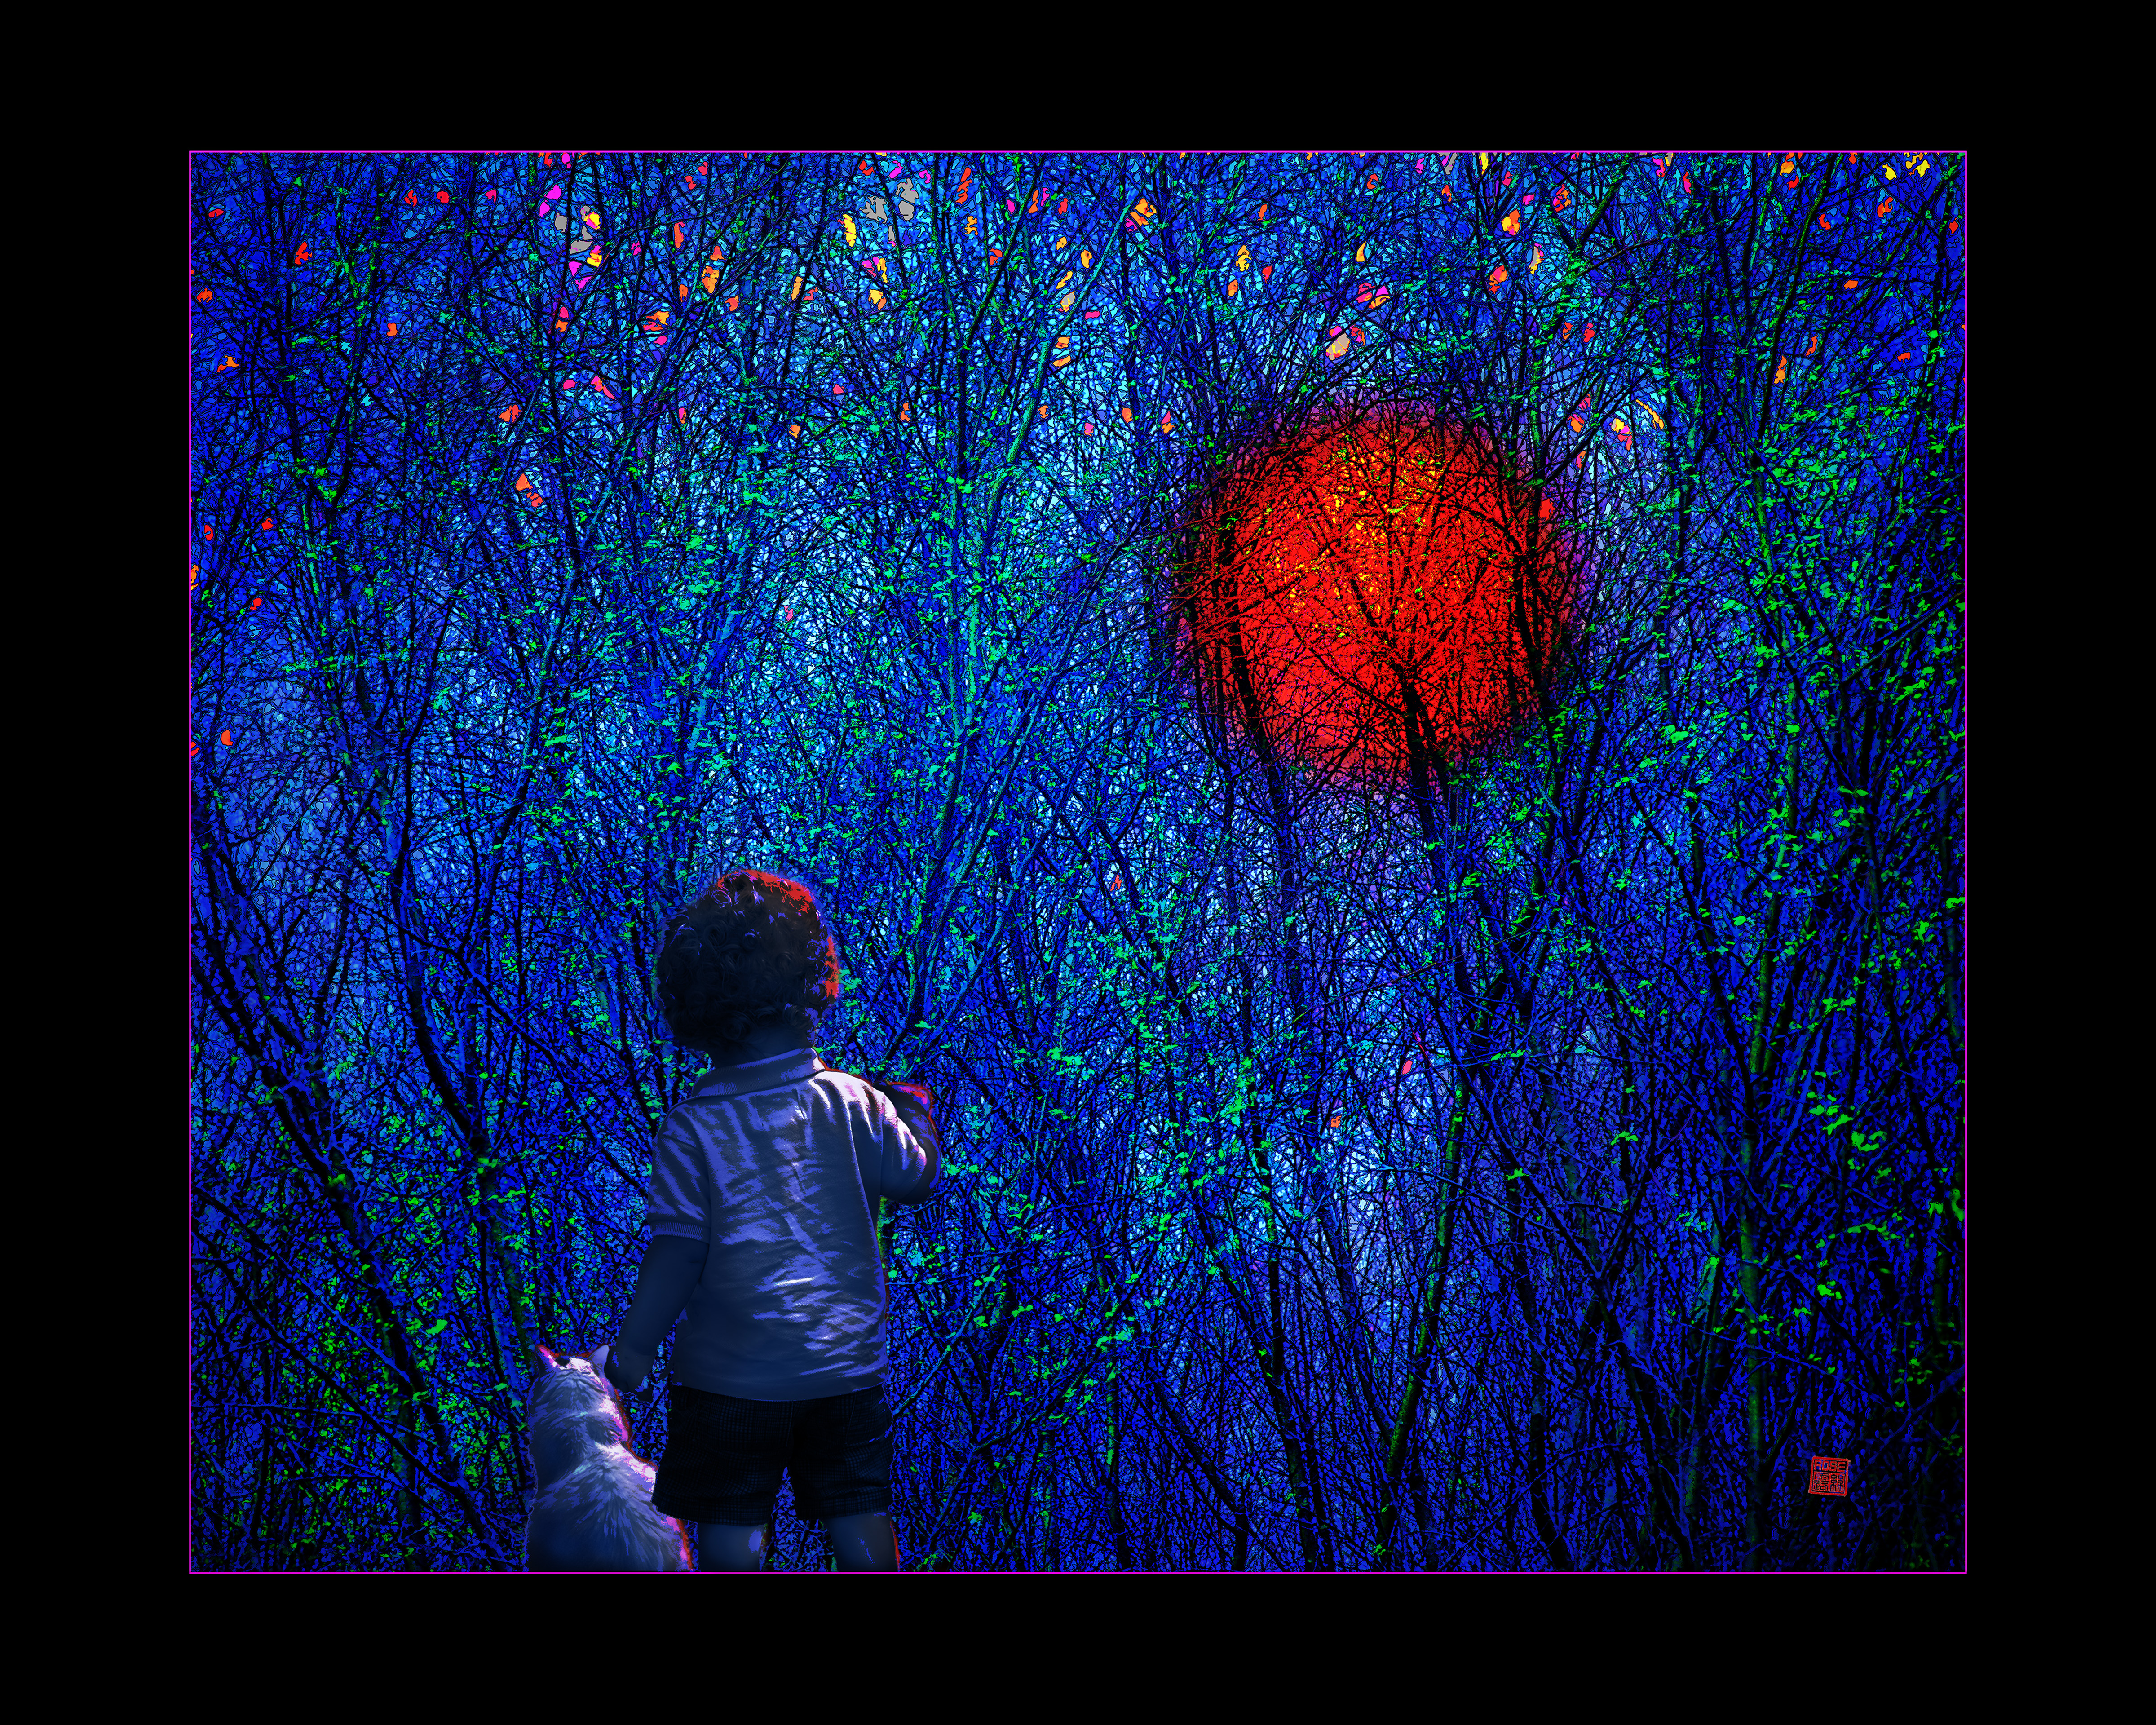 Moonrise a Boy and Cat